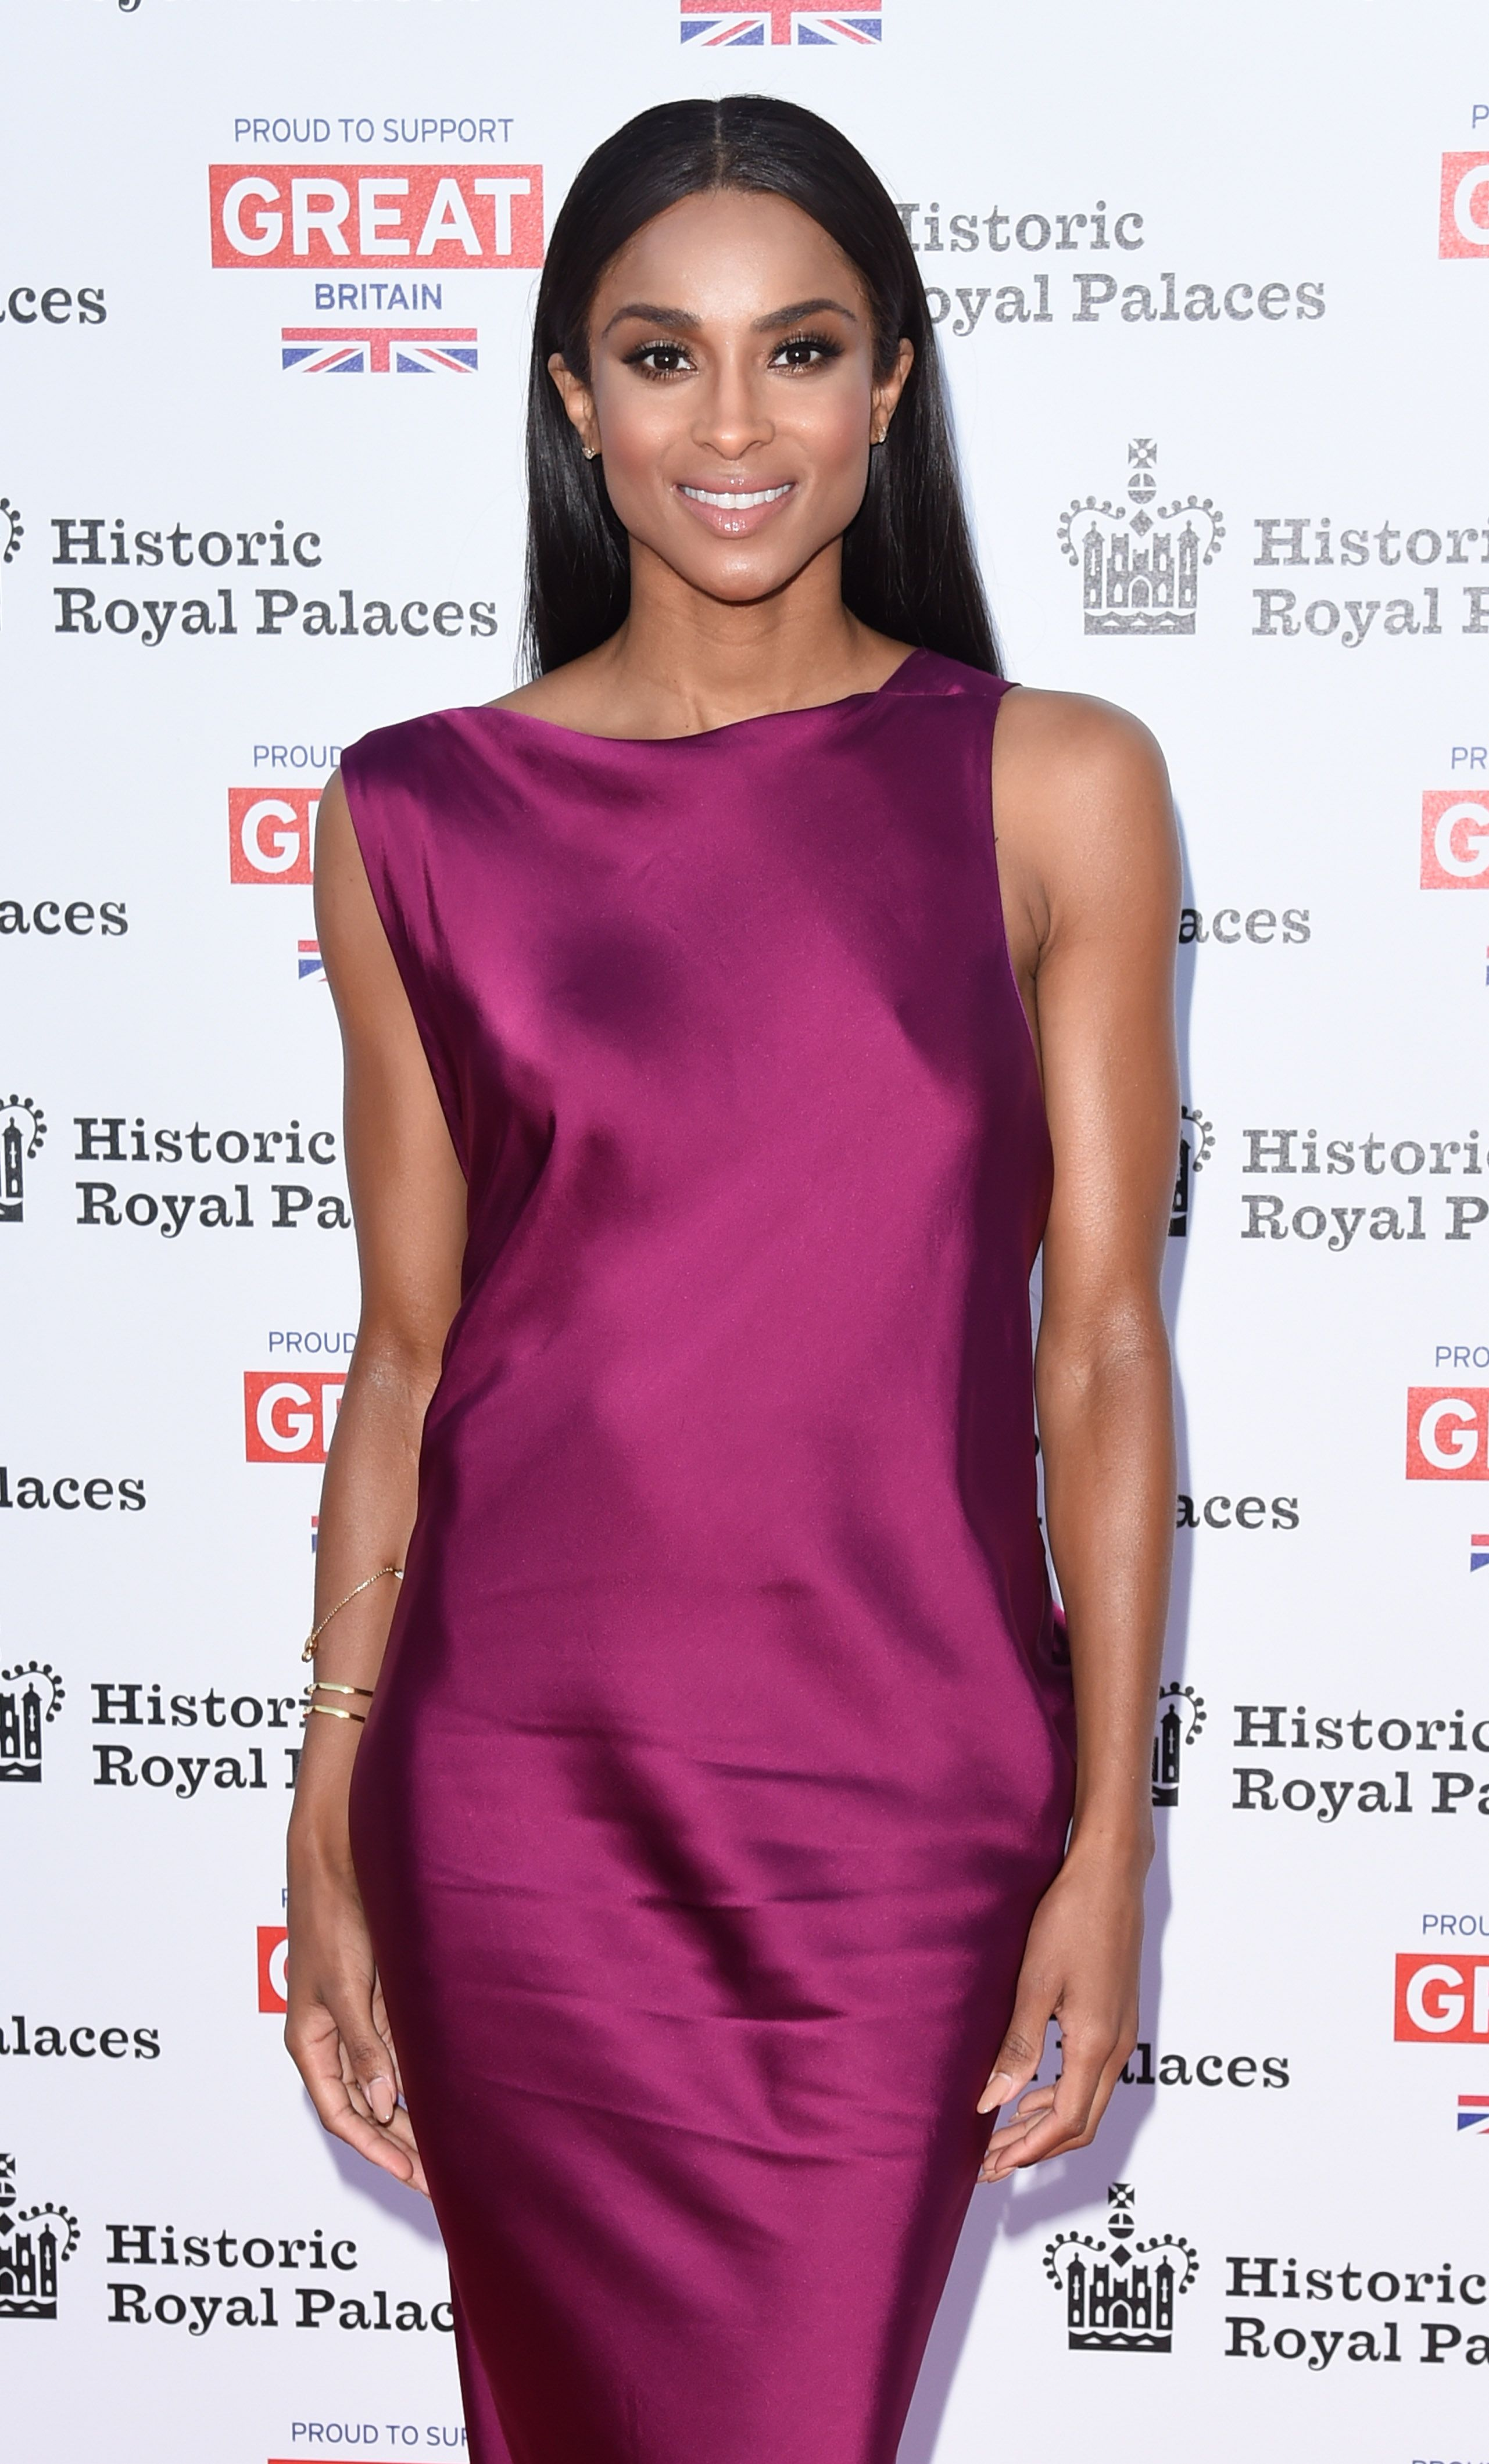 Ciara Harris during the Kensington Palace Summer Gala at Kensington Palace on July 9, 2015 in London, England. | Source: Getty Images